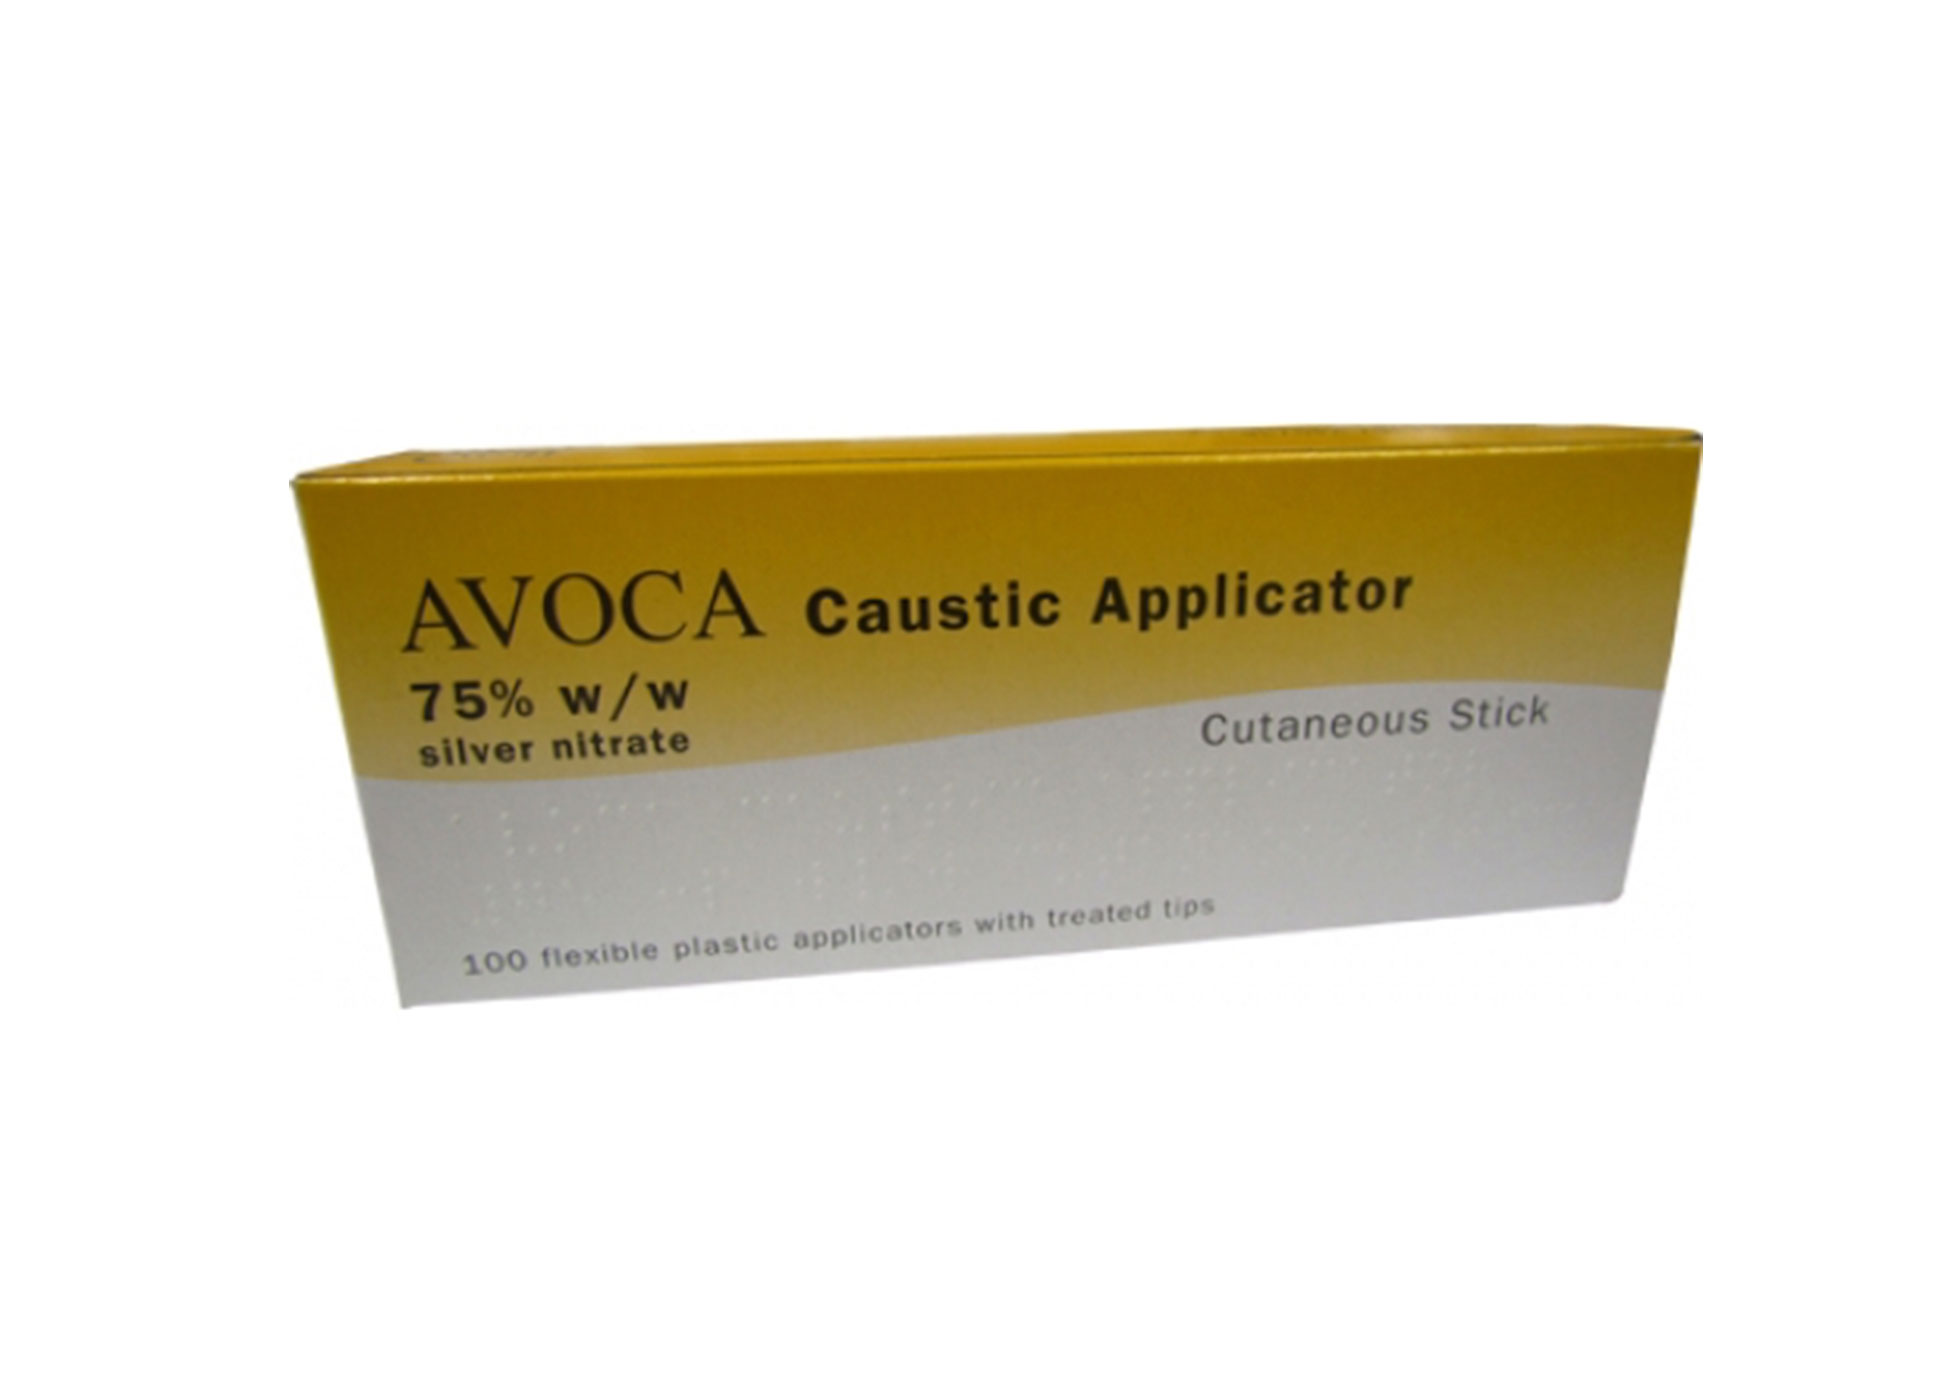 P' Caustic Applicators - 75% Applicator - Pack of 100